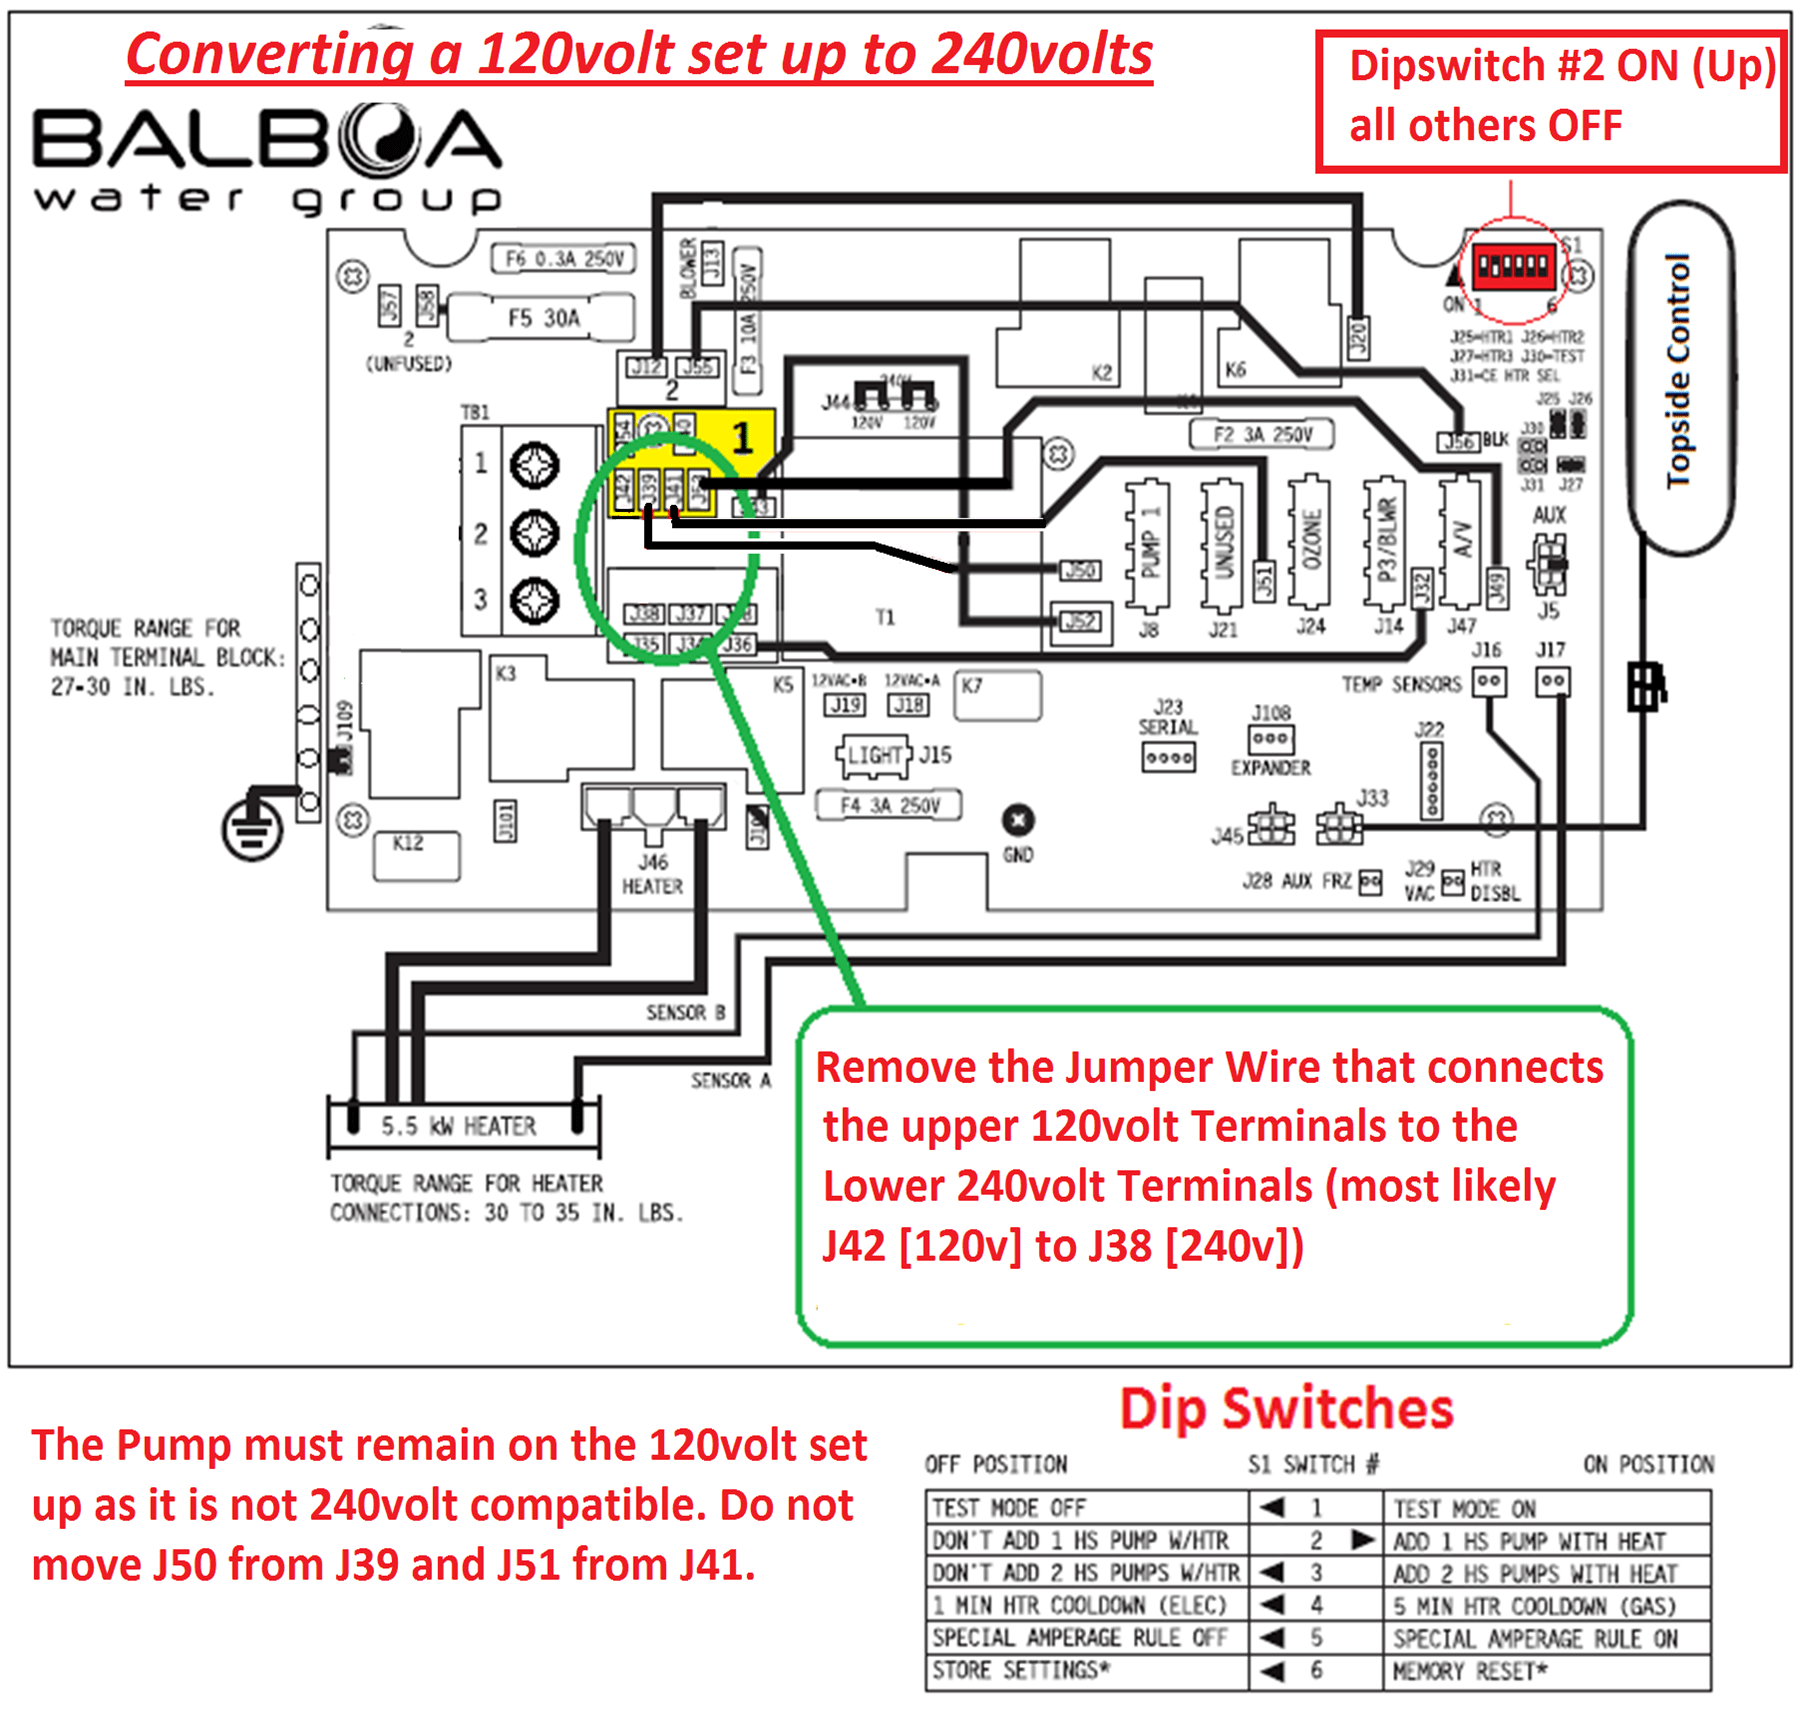 electrical installation converting a 120v balboa bp to 240v hydro quip heater wiring schematics [ 1804 x 1728 Pixel ]